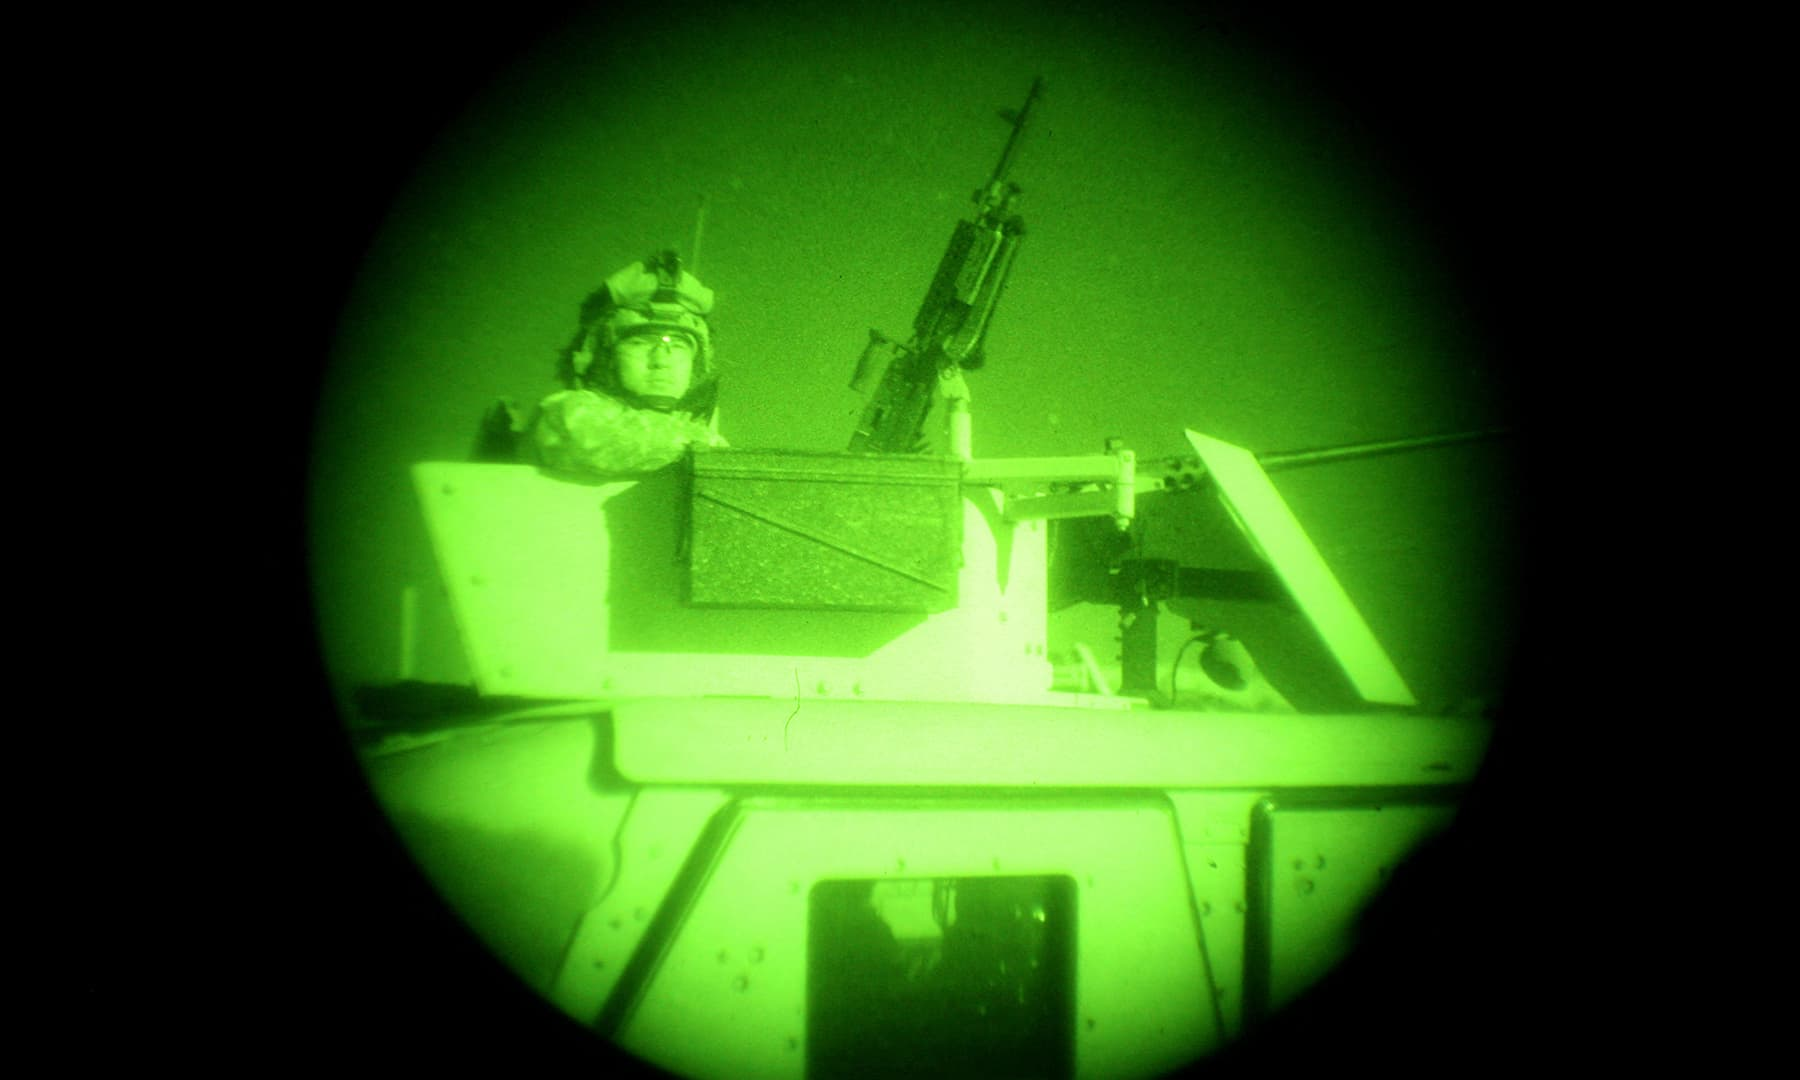 In this file photo taken on December 5, 2006, US soldiers from 1st Battalion, 32 Infantry Regiment (1-32), attached to 4th Battalion, 25 Field Artillery, (4-25), 10th Mountain Division, are seen through a night vision scope following a search of a compound near Khowst in Paktia province. — AFP